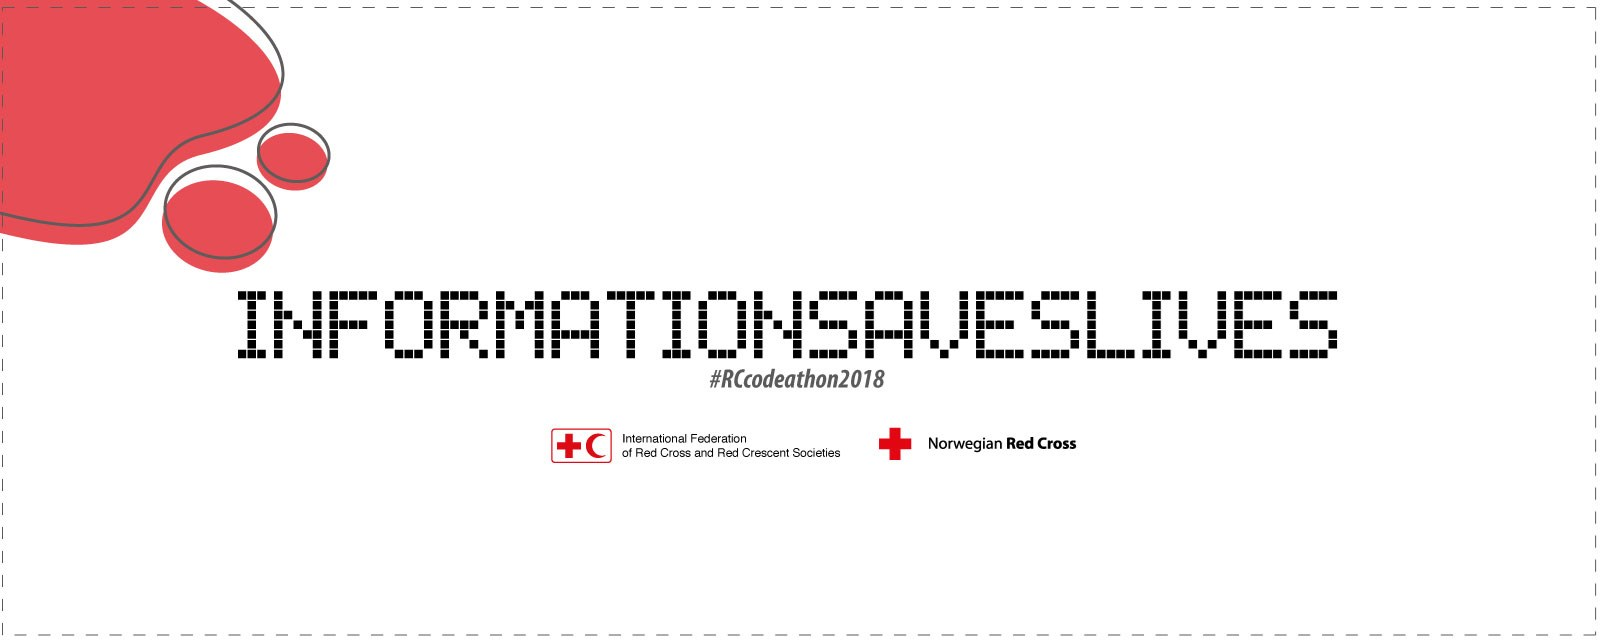 Codeathon banner white background with black Cell phone digits saying information saves lives 2018